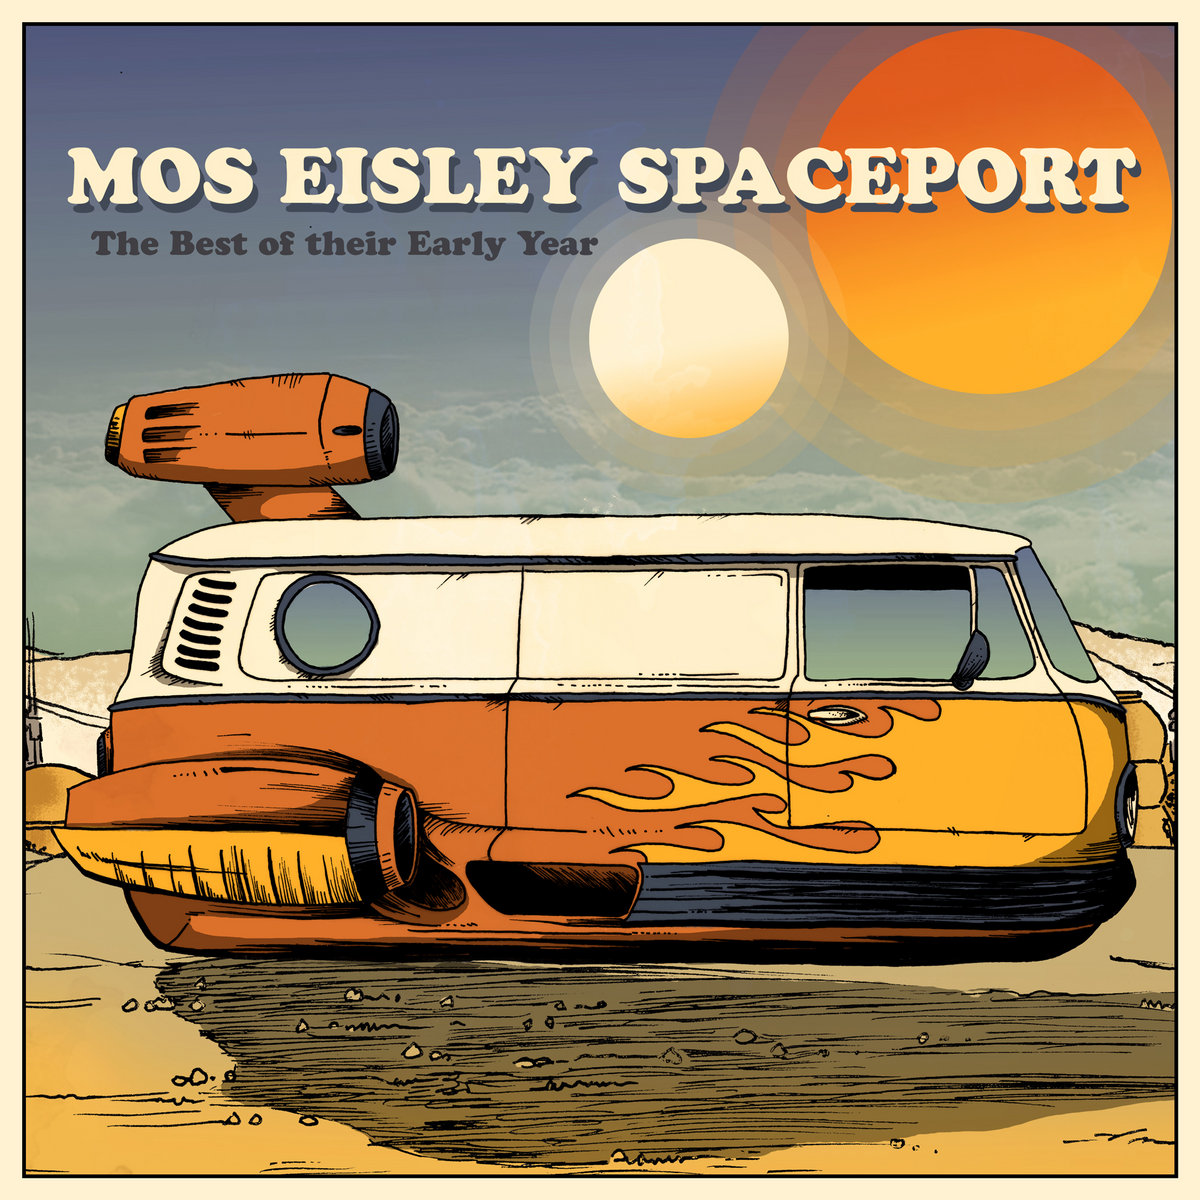 Reseña: MOS EISLEY SPACEPORT.- 'The Best of their Early Year'